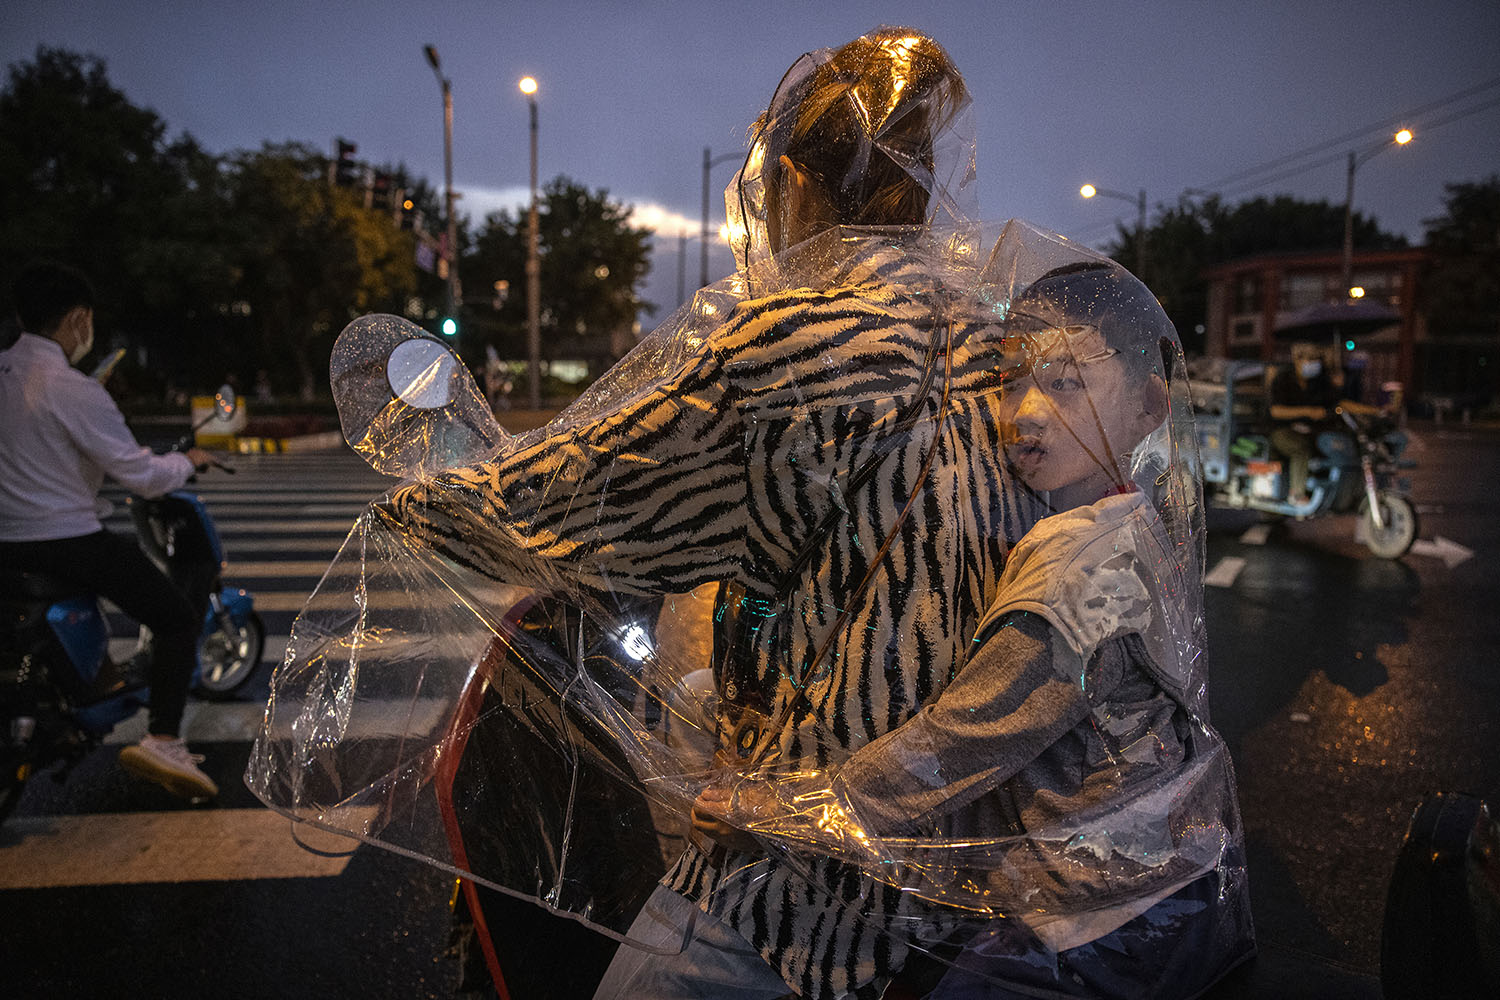 A boy sits inside his mother's plastic raincoat as they wait to cross at a traffic light during a rainstorm in Beijing on Sept. 8. Kevin Frayer/Getty Images